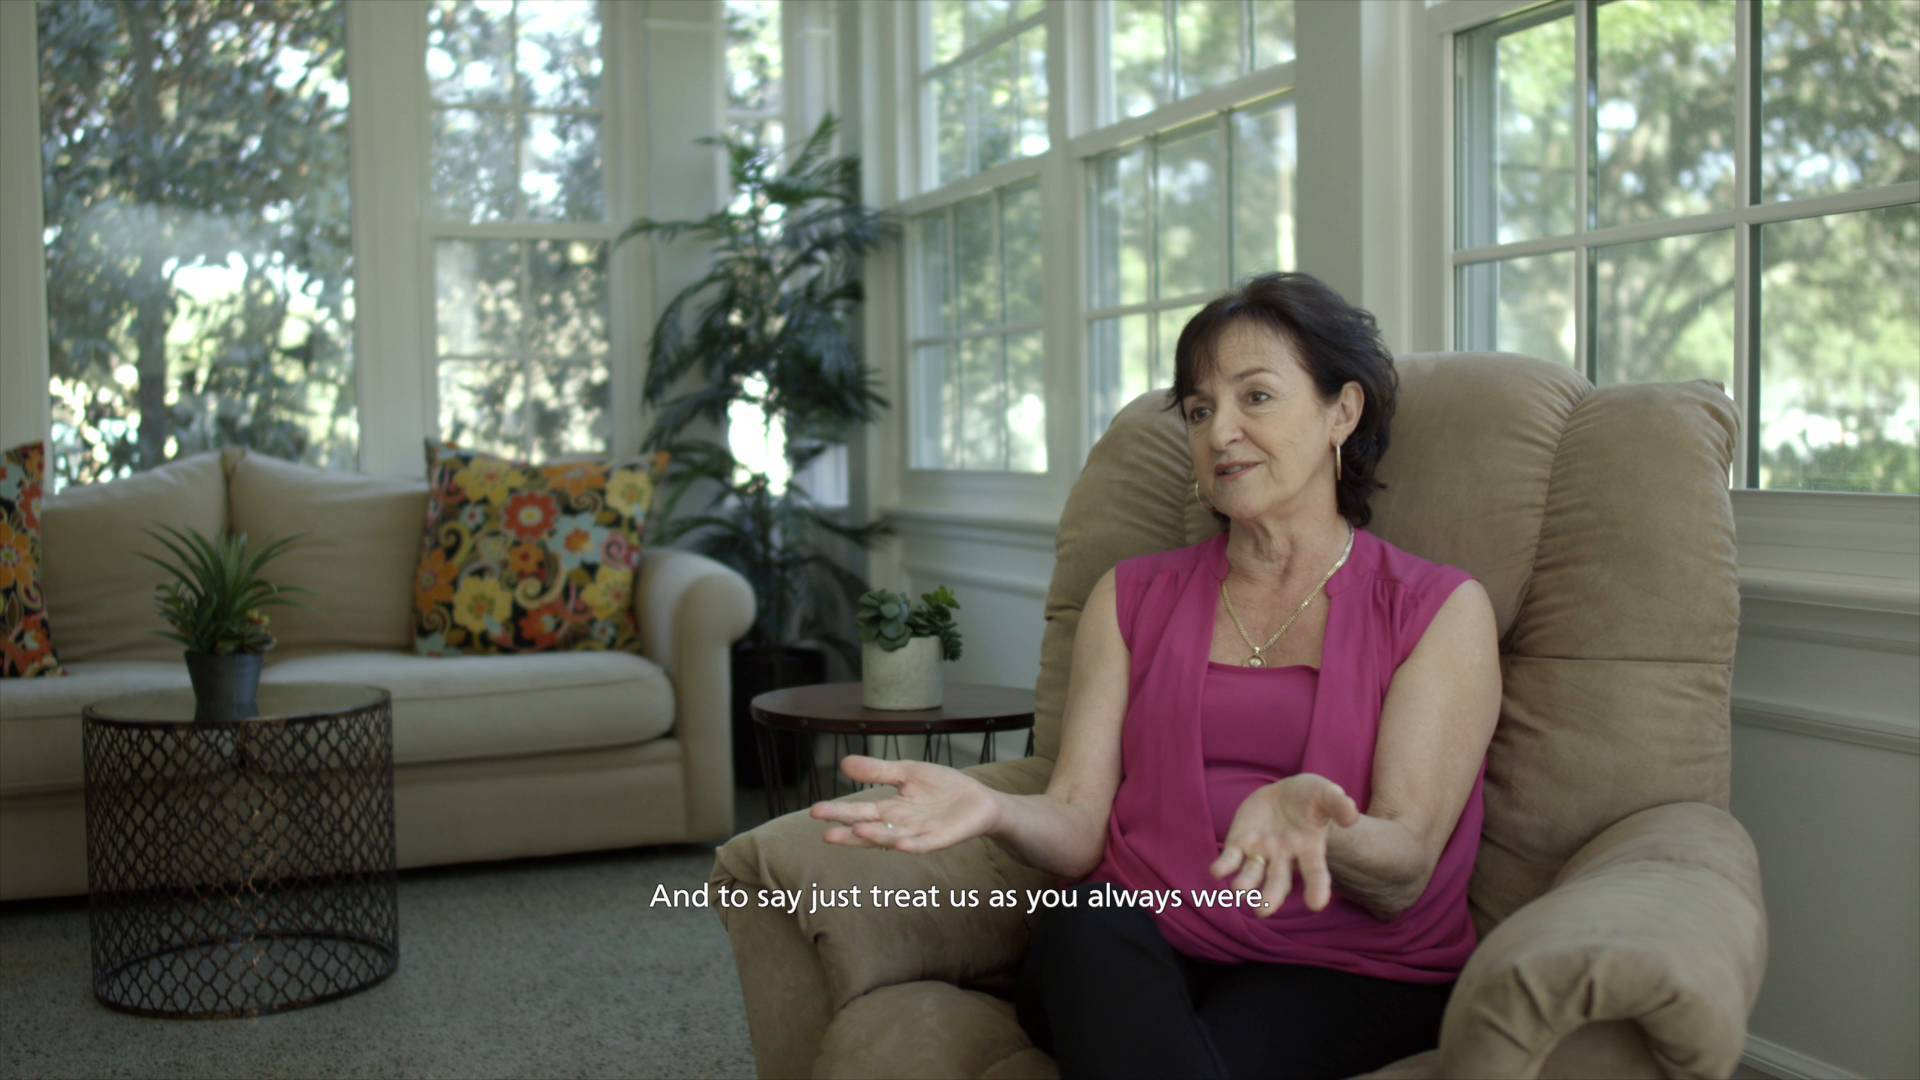 Lorraine Kember video on how her husband was exposed to asbestos in Australia